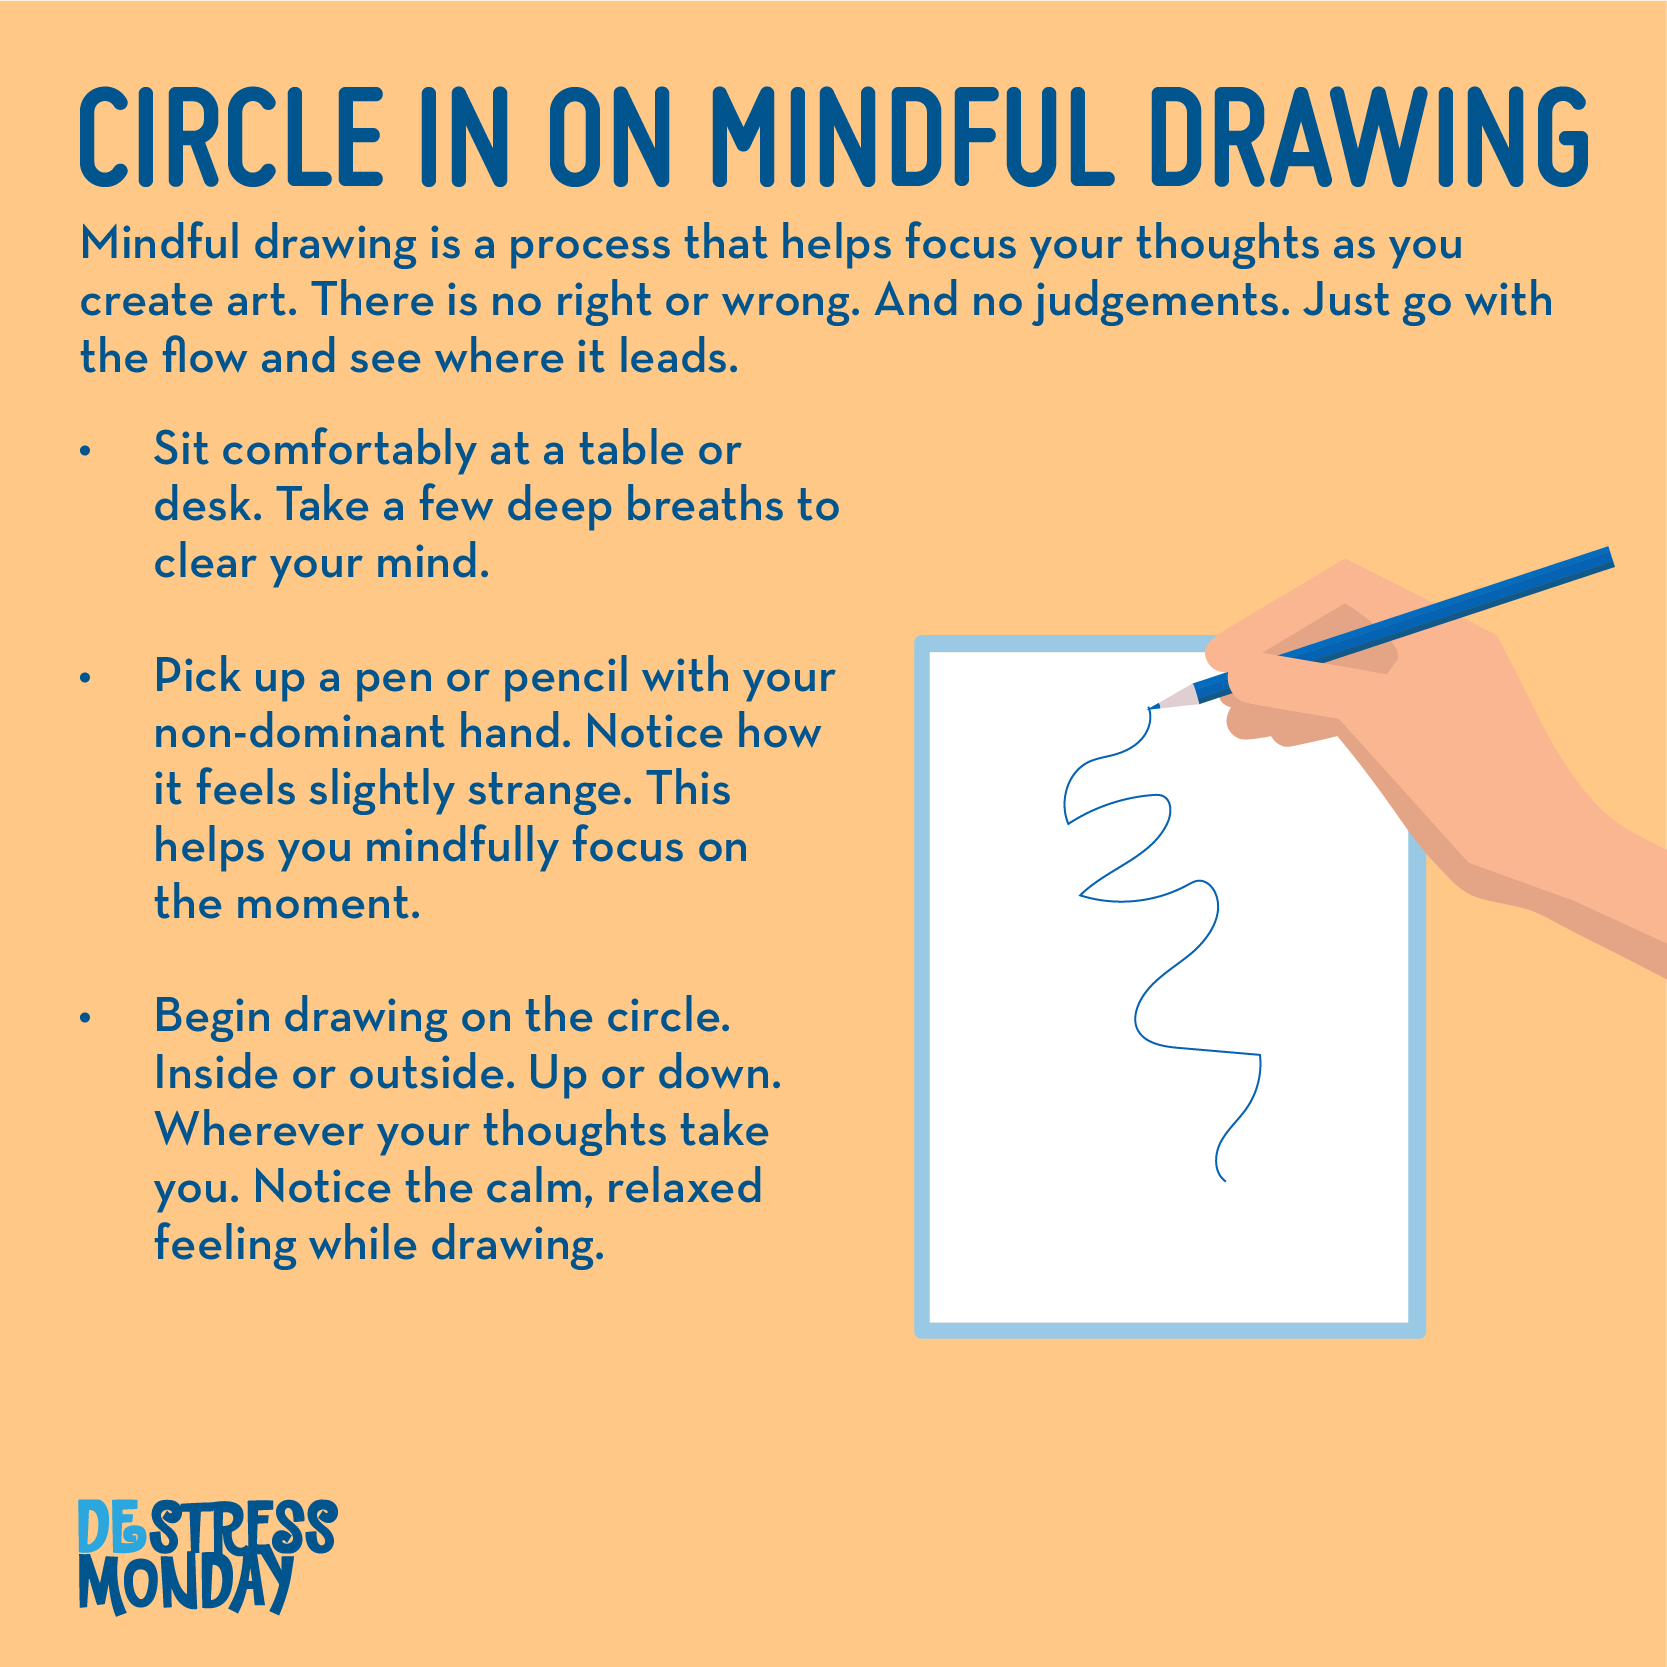 mindful drawing